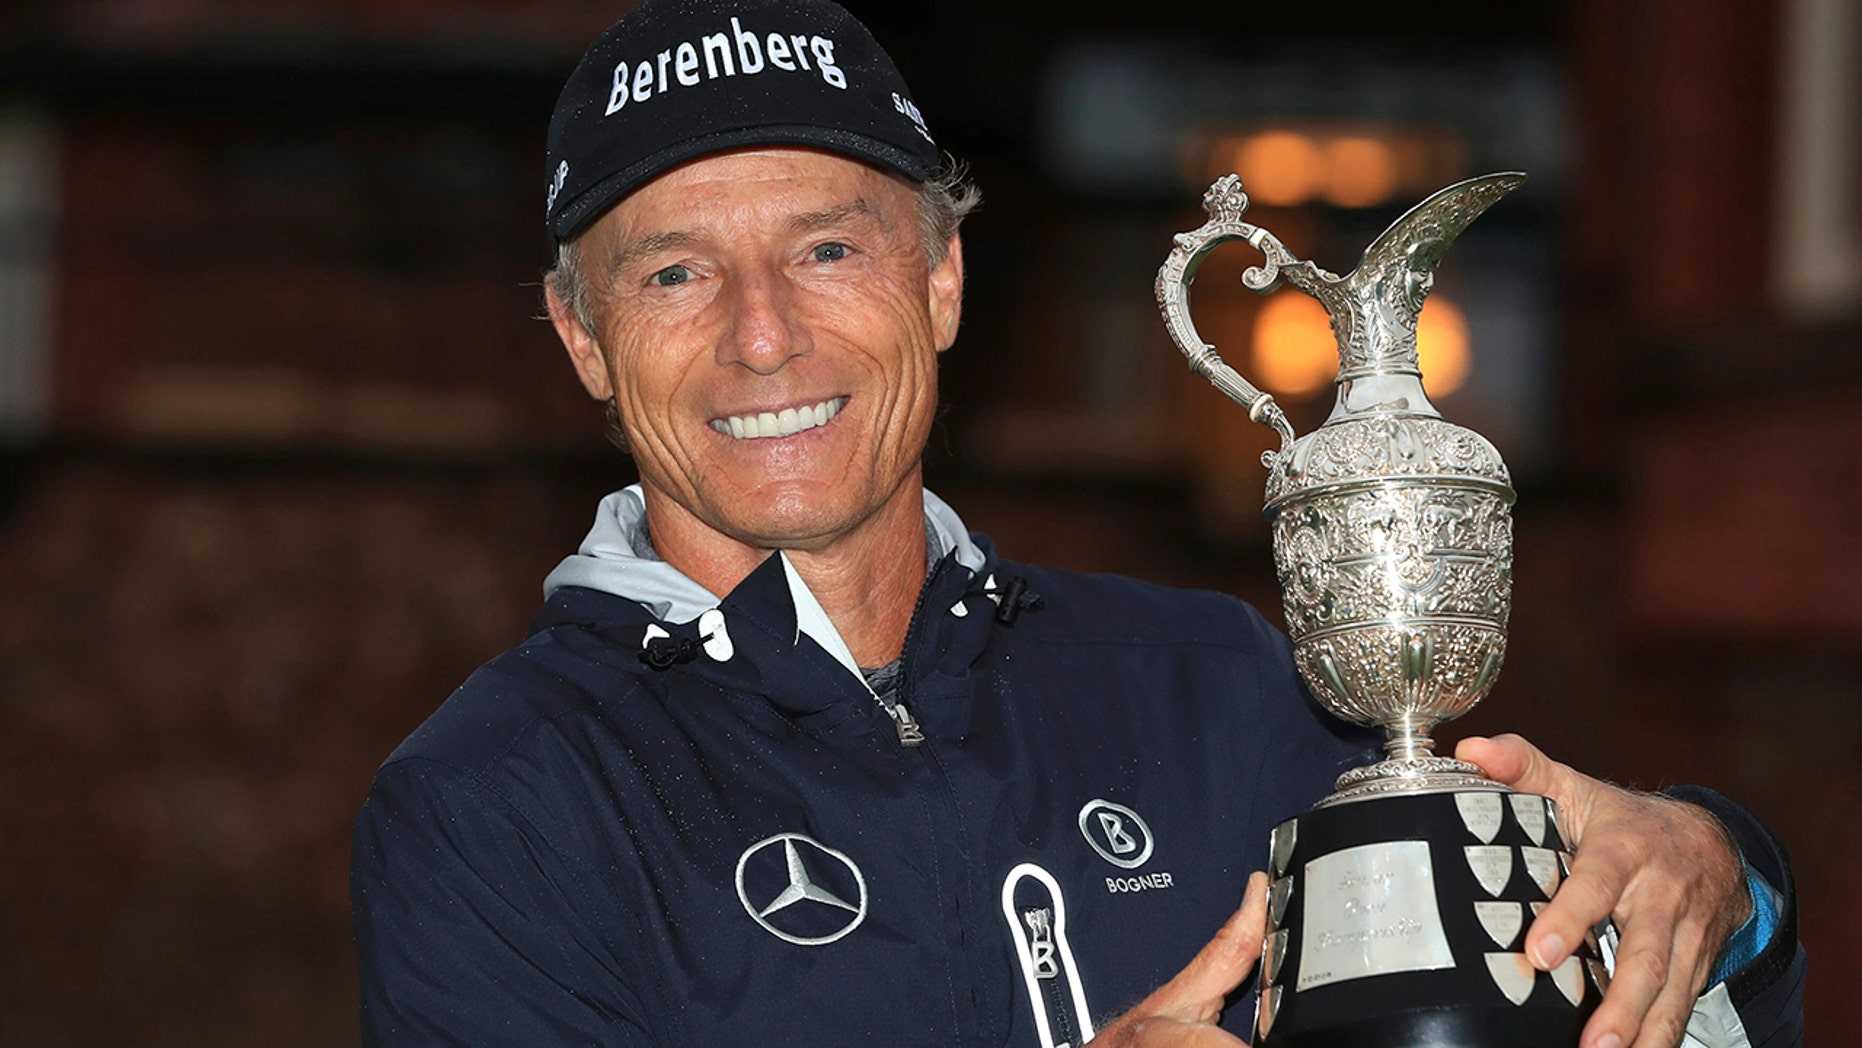 Bernhard Langer poses with the trophy after winning the senior Open golf tournament at Royal Lytham & St Annes Golf Club, in Lytham, England, Sunday July 28, 2019. (Peter Byrne/PA via AP)